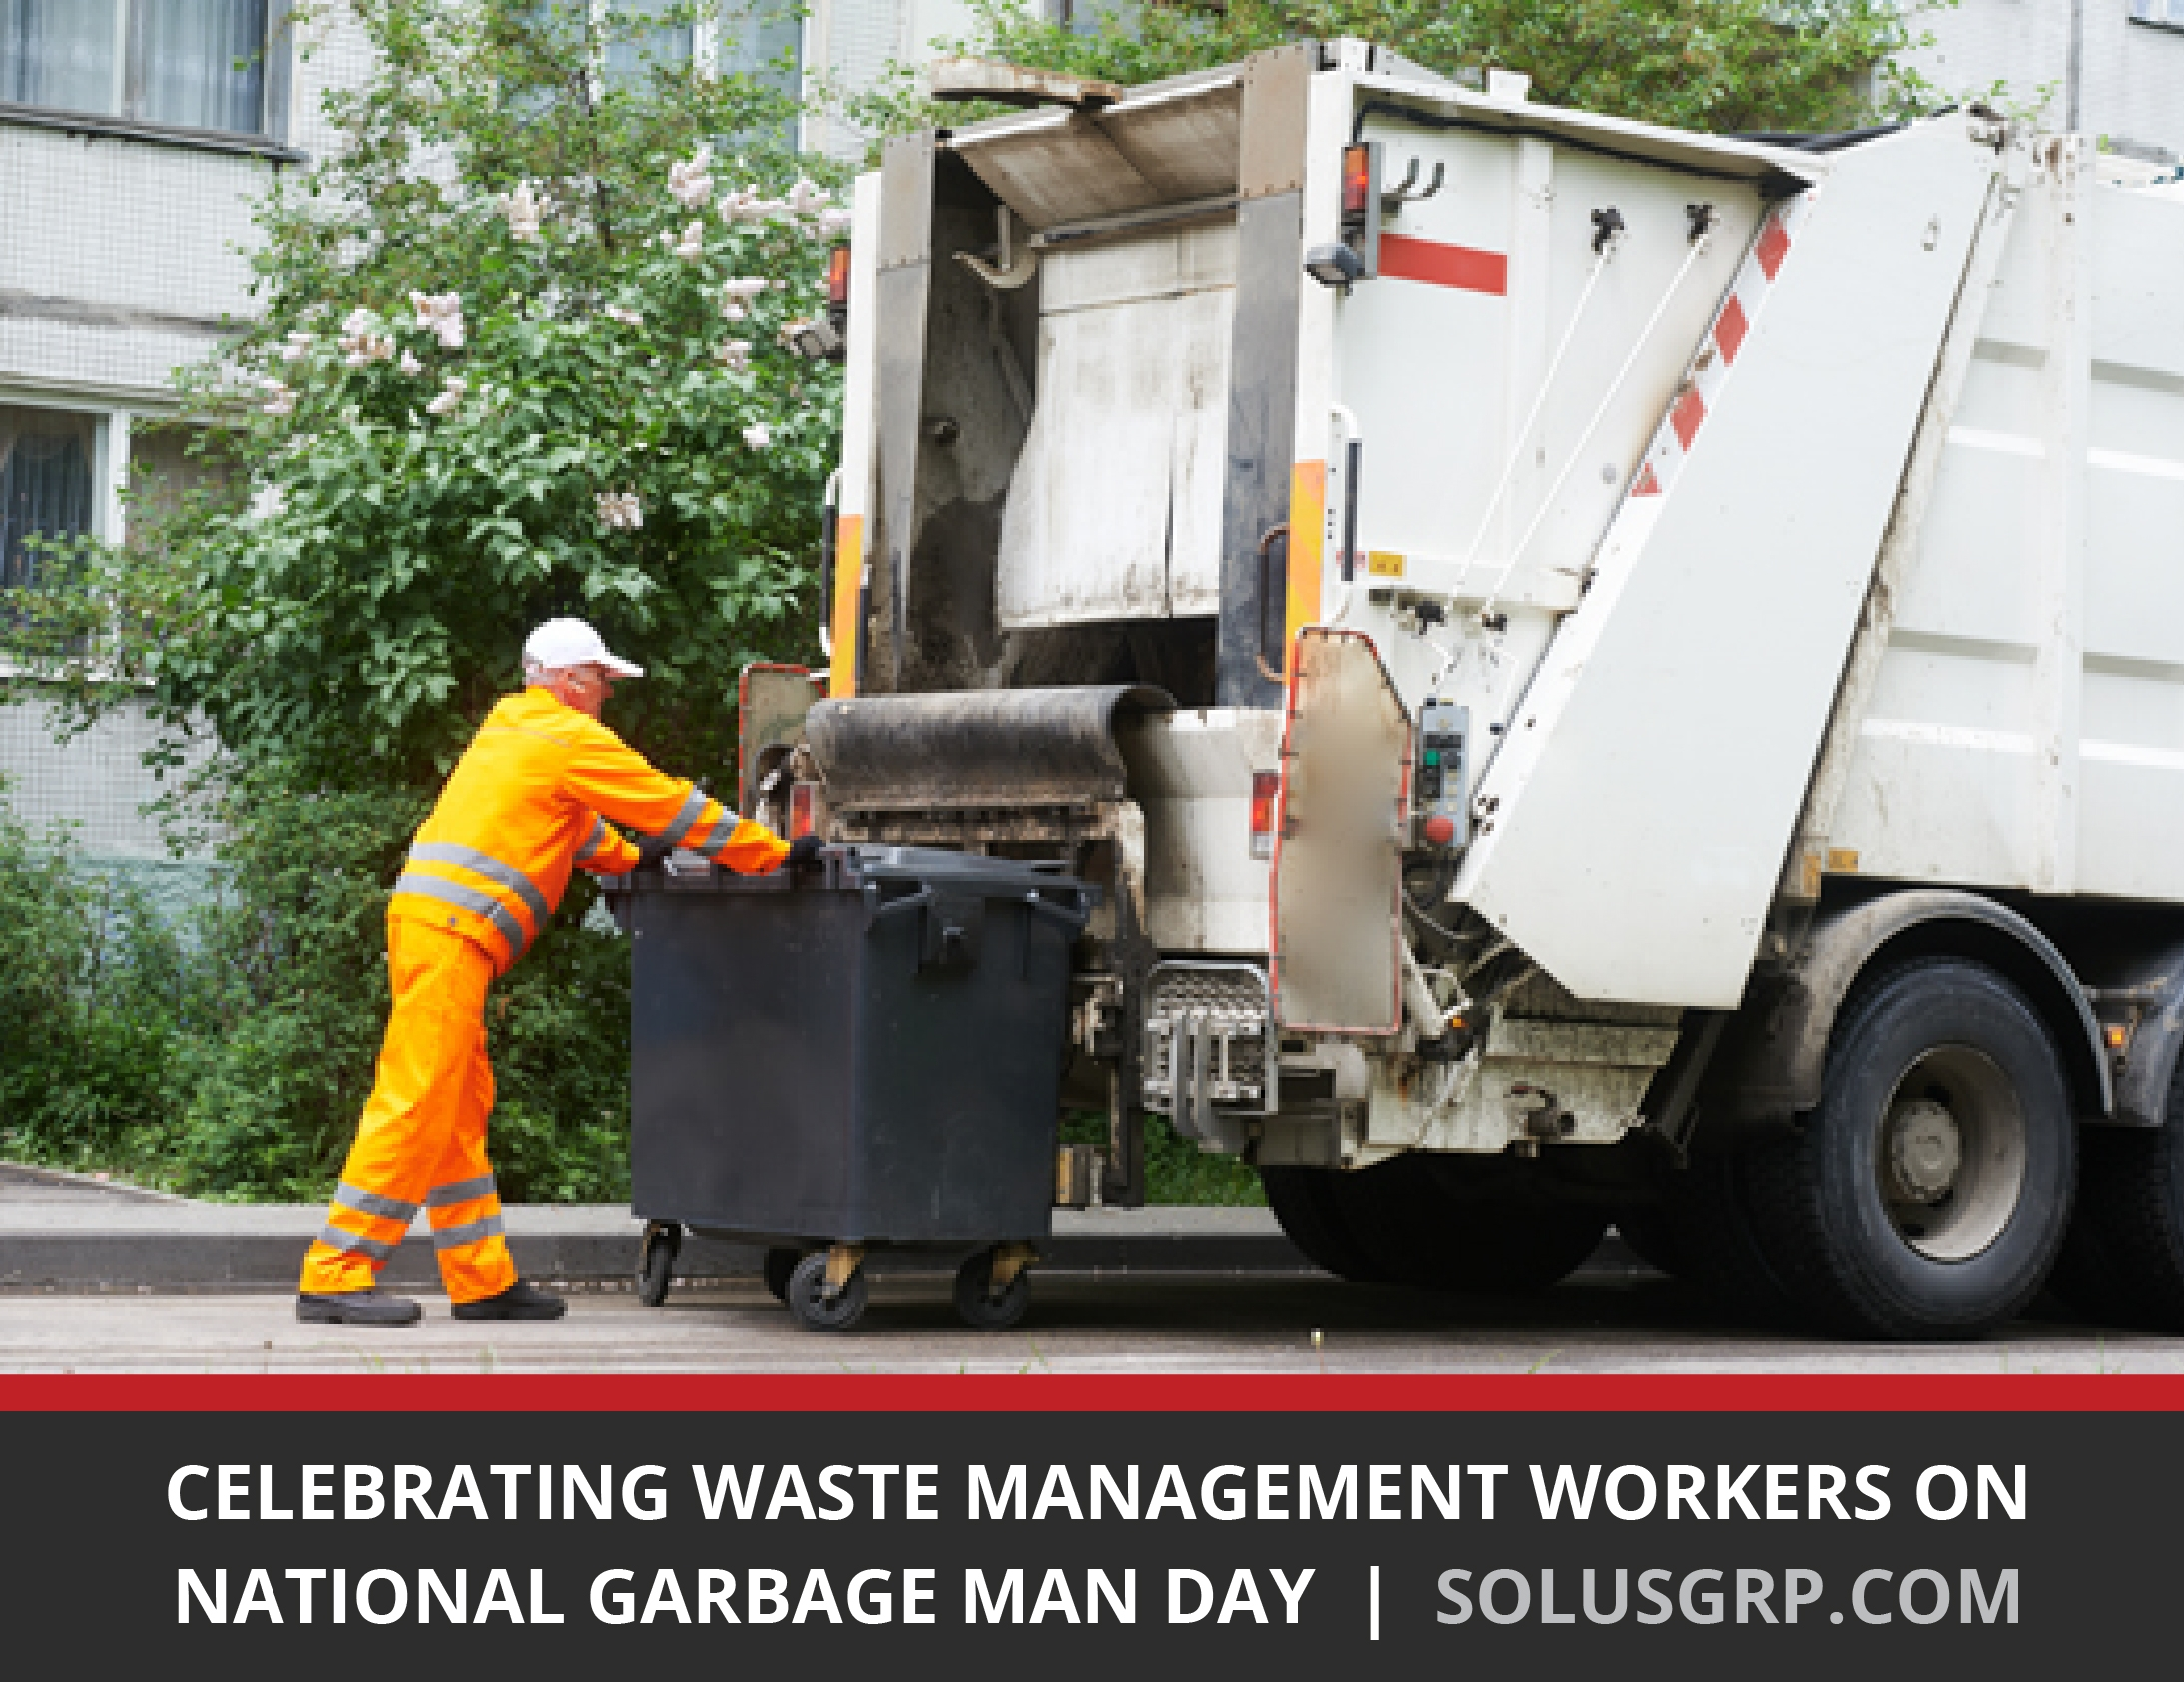 Celebrating Waste Management Workers on National Garbage Man Day